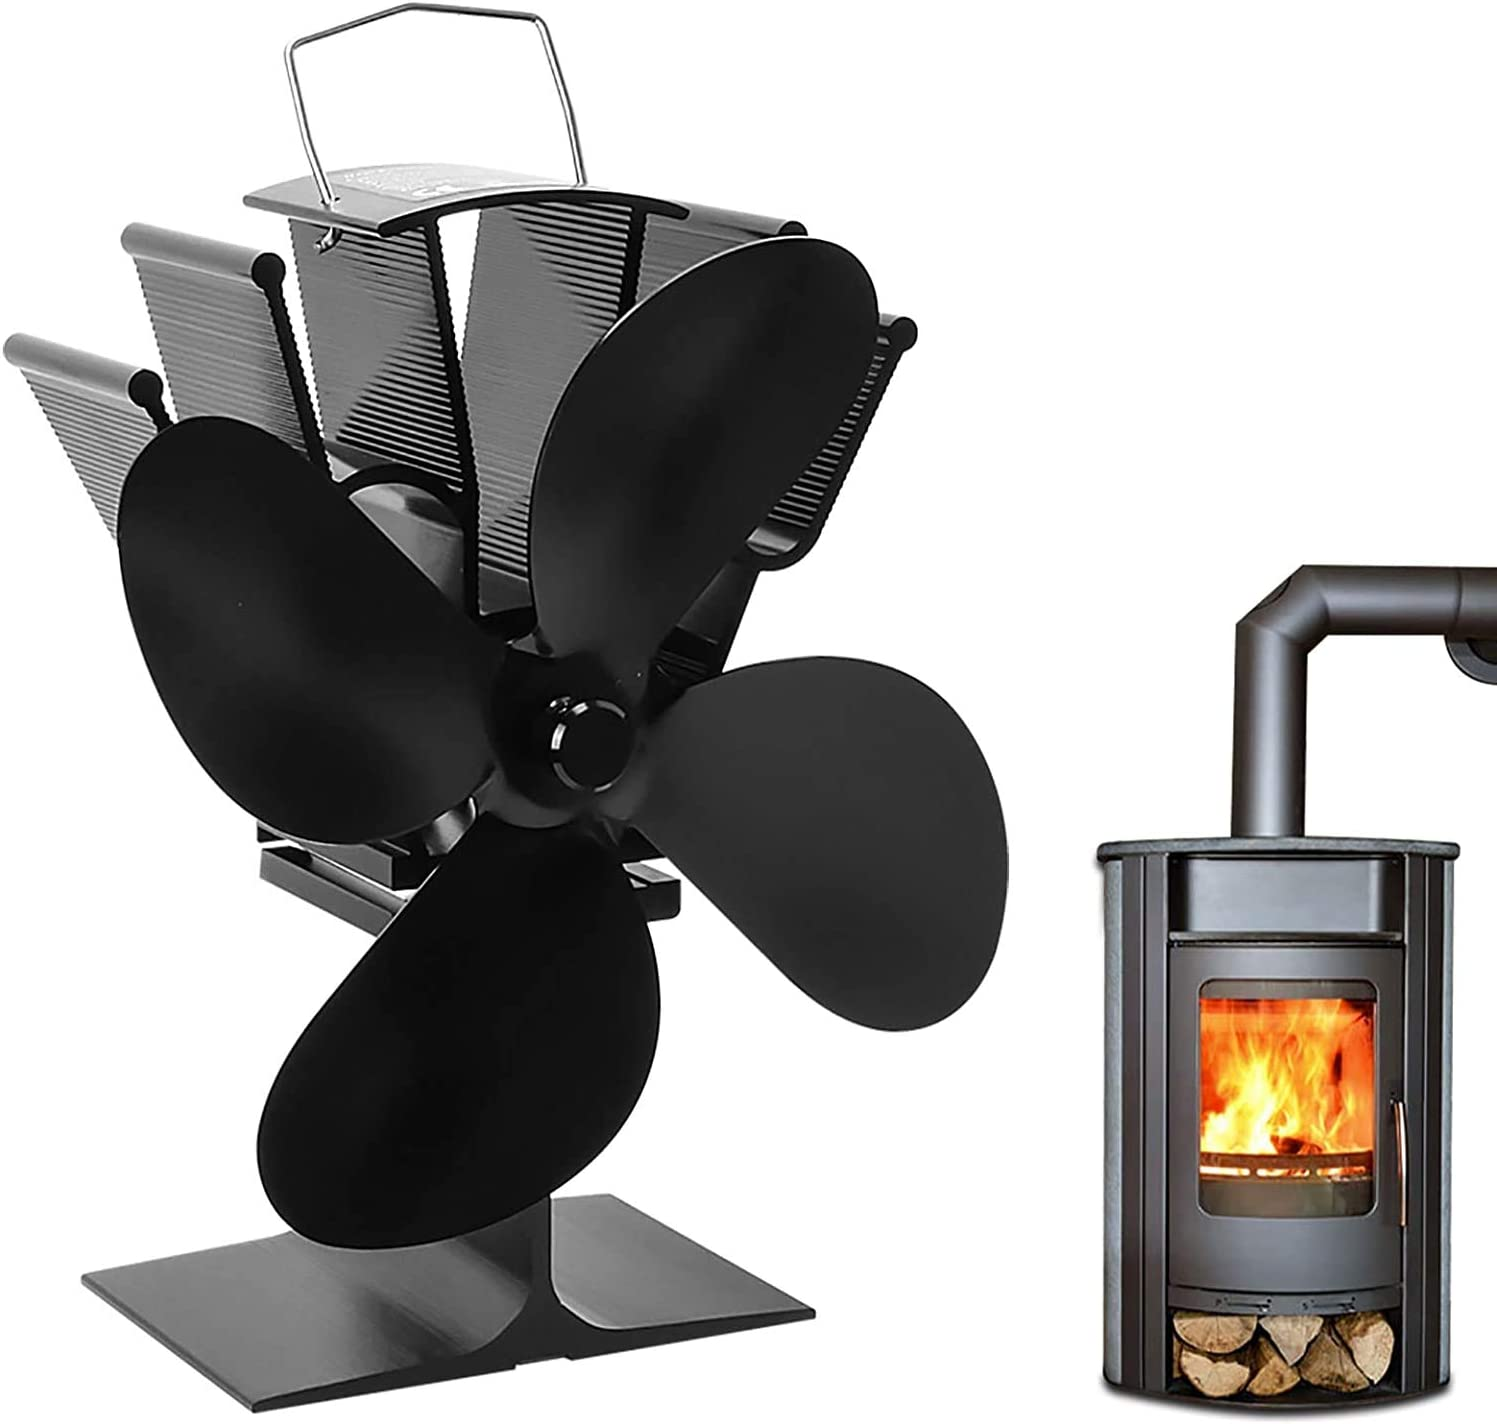 Mefine 4 Blades Stove Fan Heat Powered Stove Fireplace Fan Silent Motors for Home Wood Log Burning Fireplace Circulating Warm Air Saving Fuel Efficiently